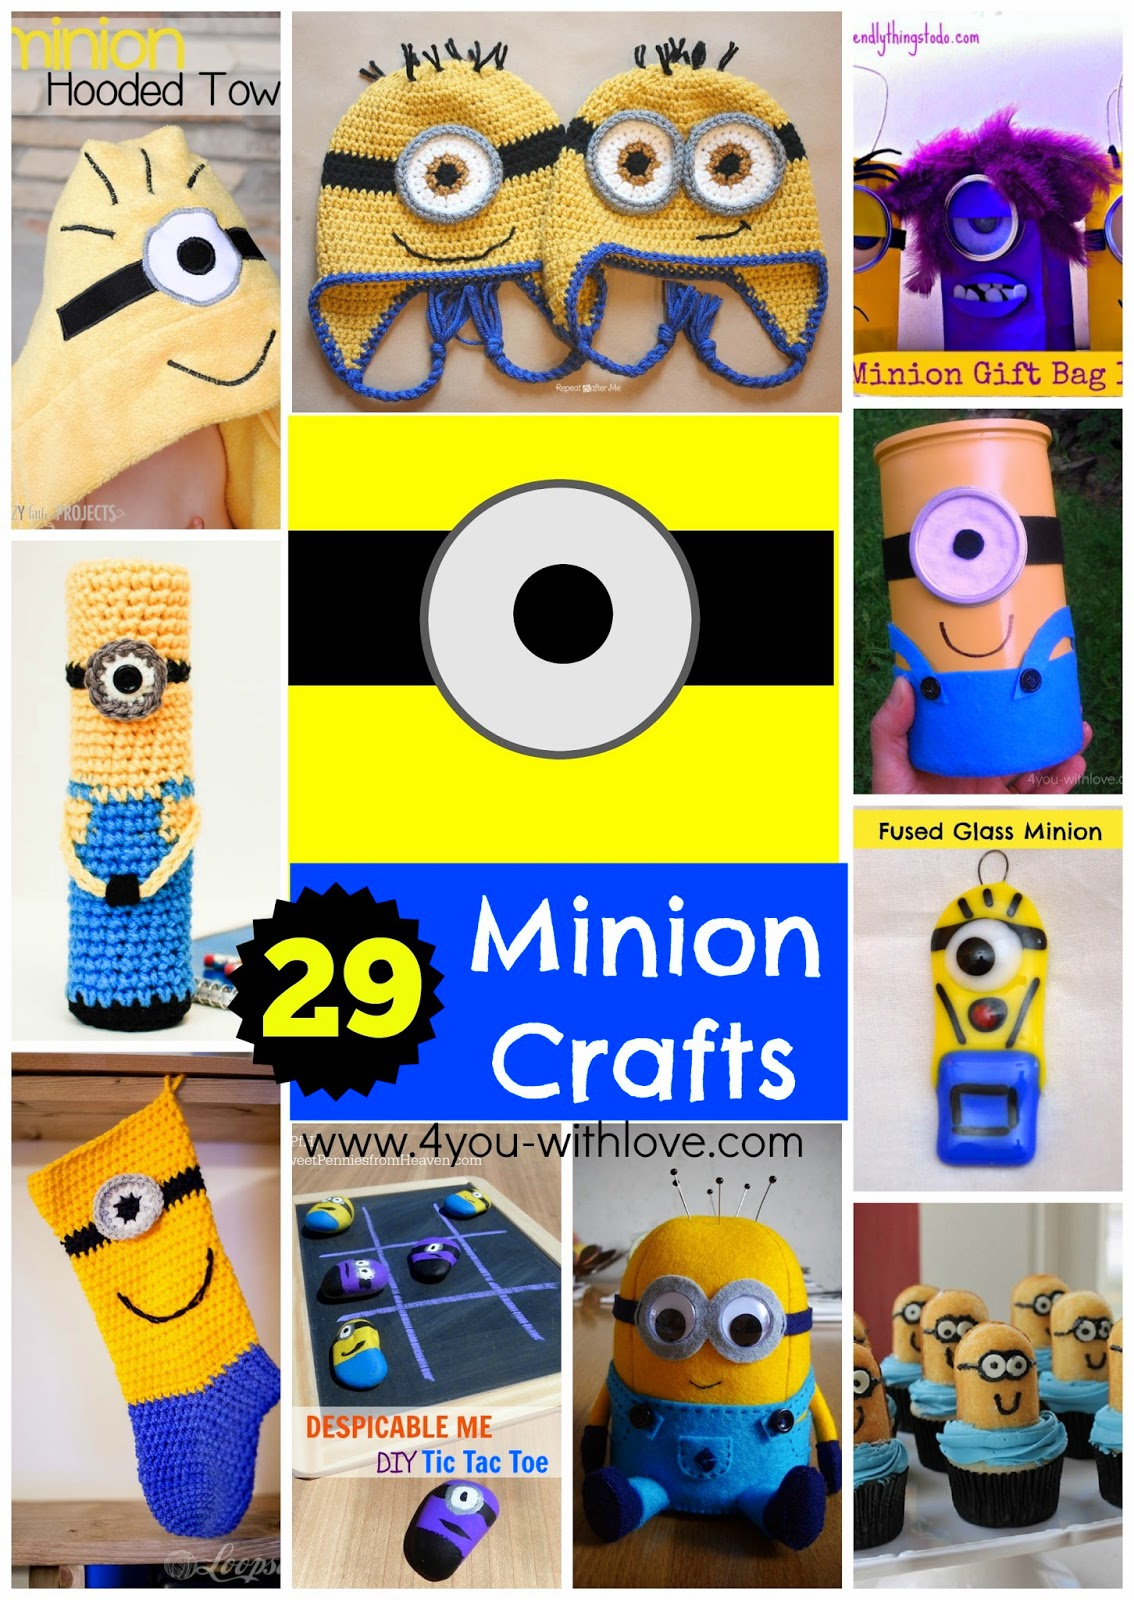 Despicable Me Crafts